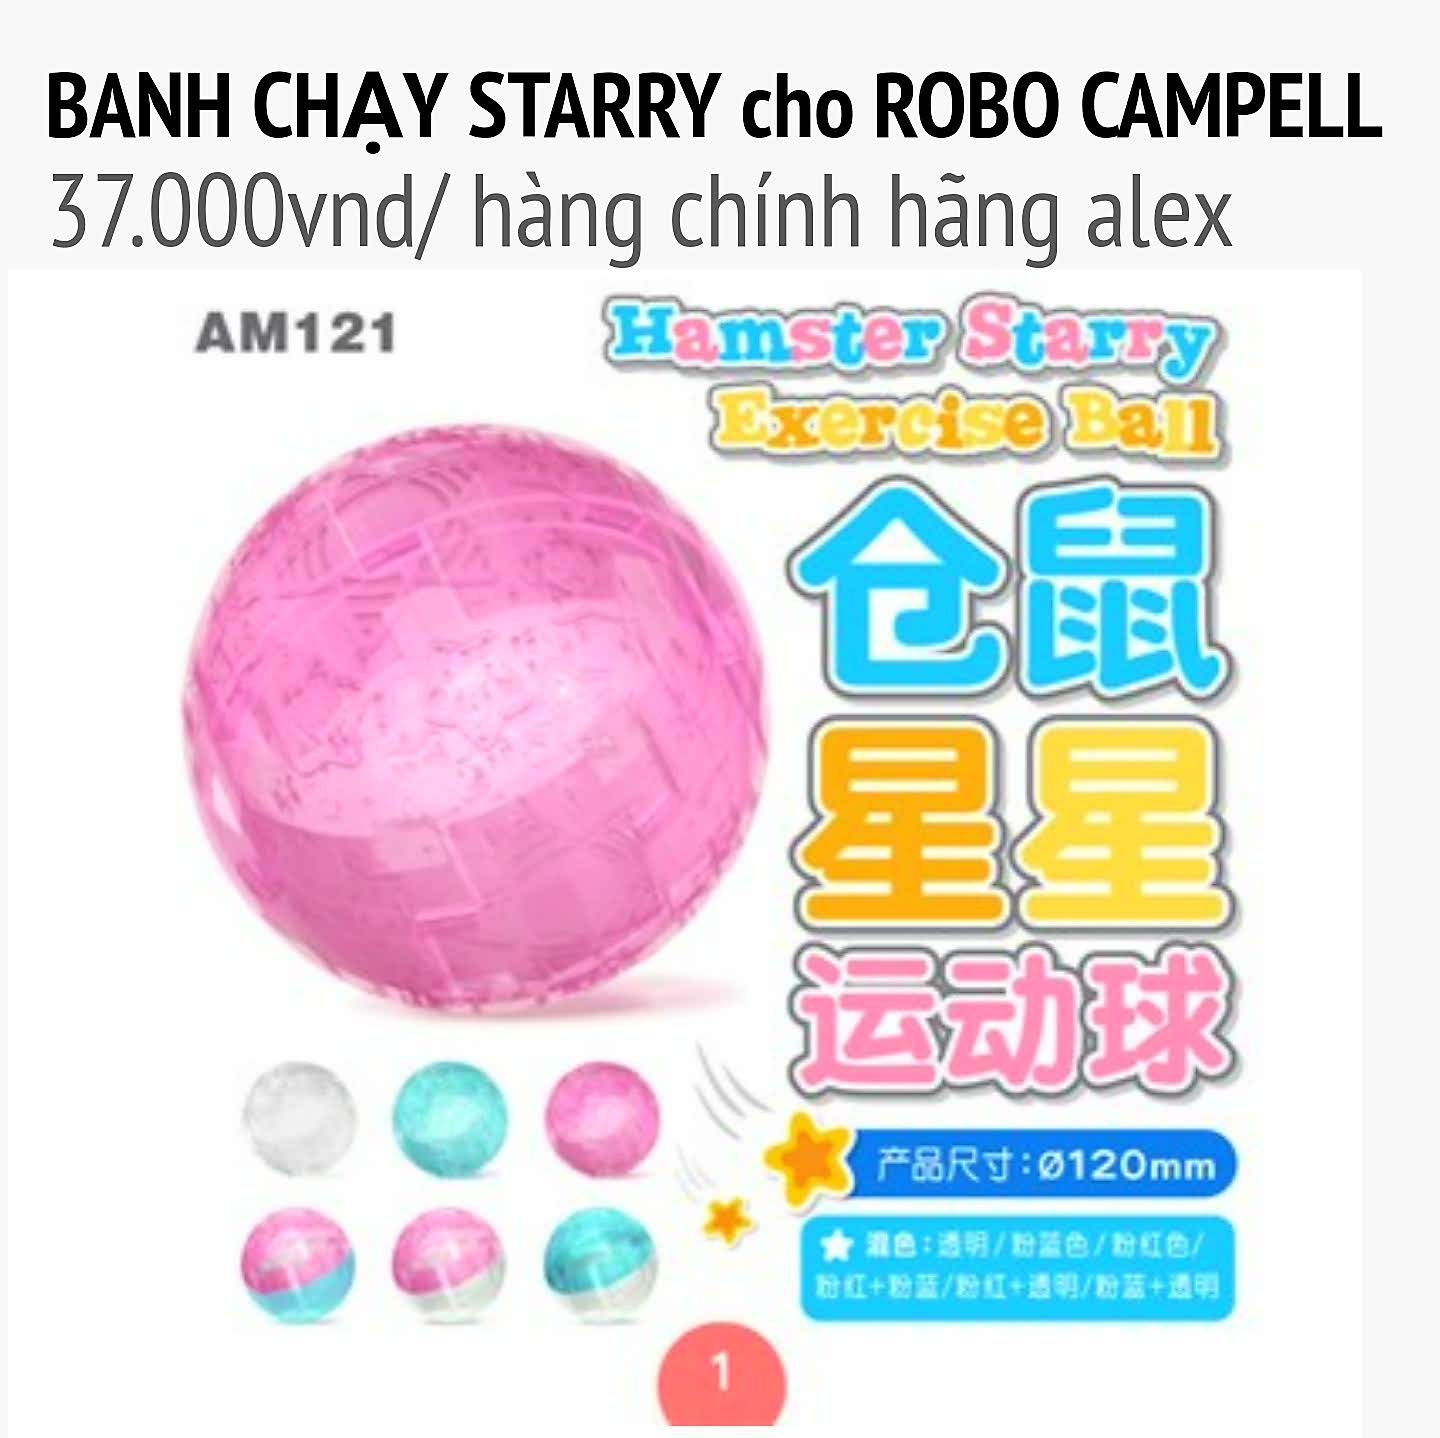 banh chạy steery size robo campell alex